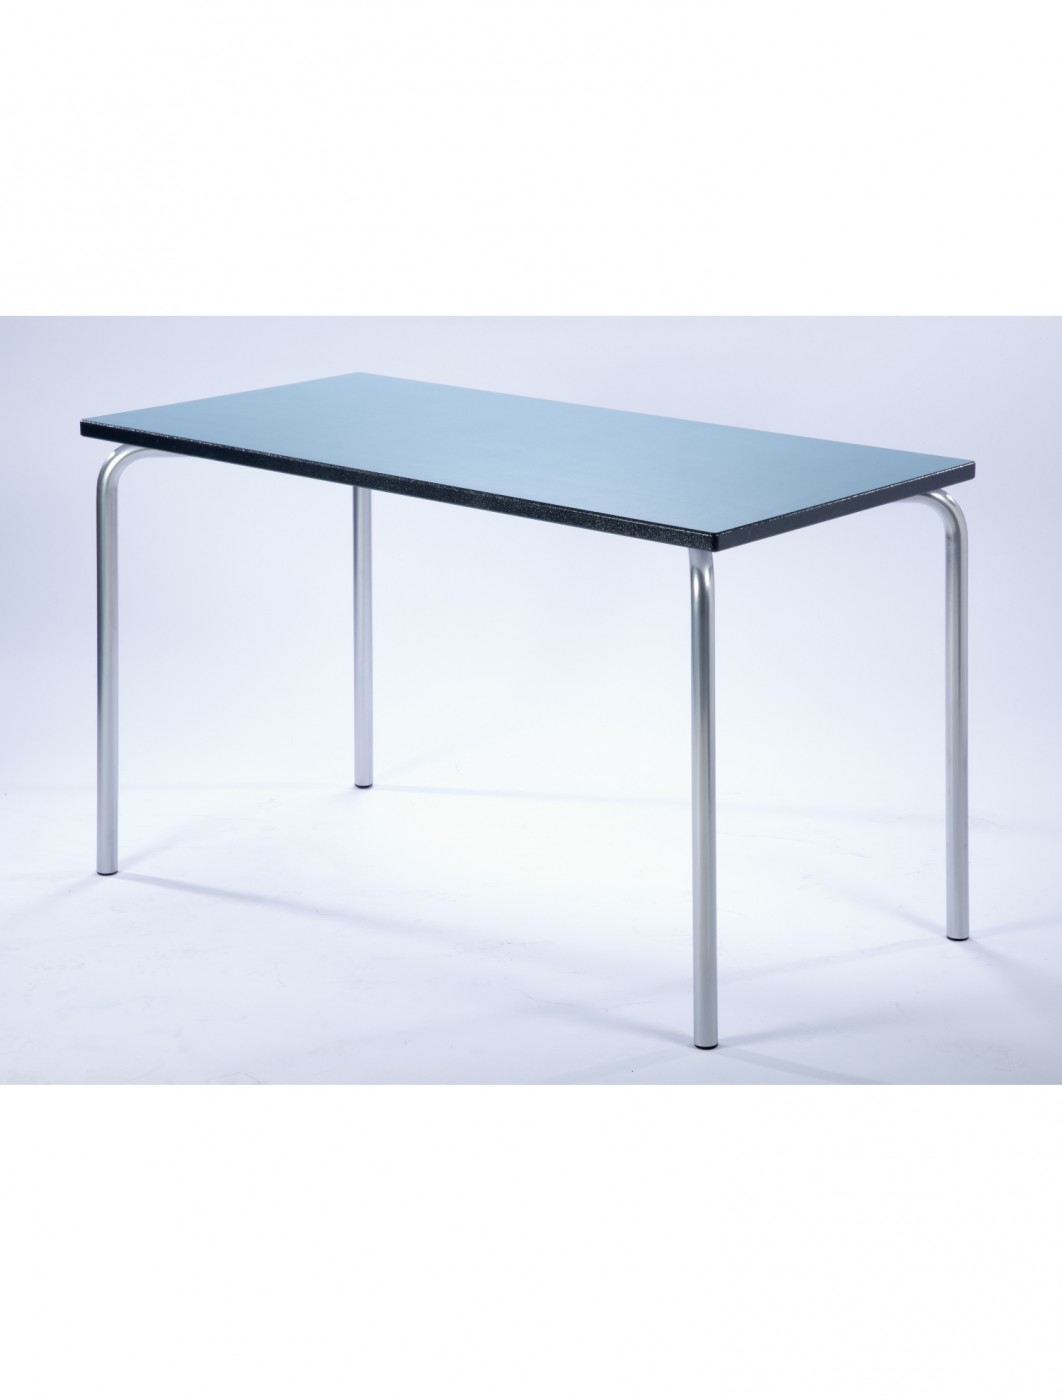 tables education table products efg classroom